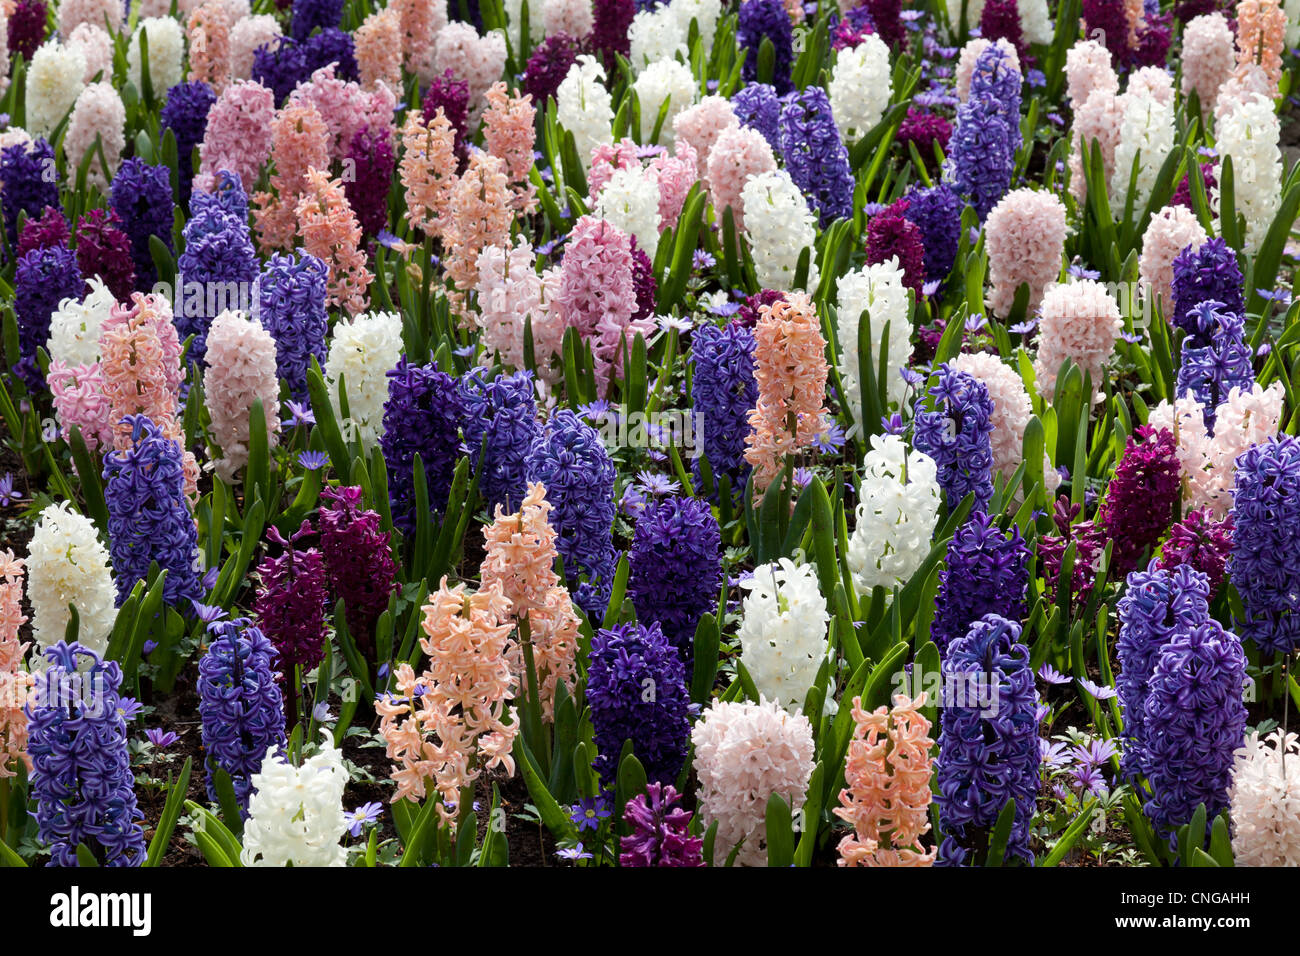 Flowerbed with Hyacinths (Hyacinthus) Stock Photo